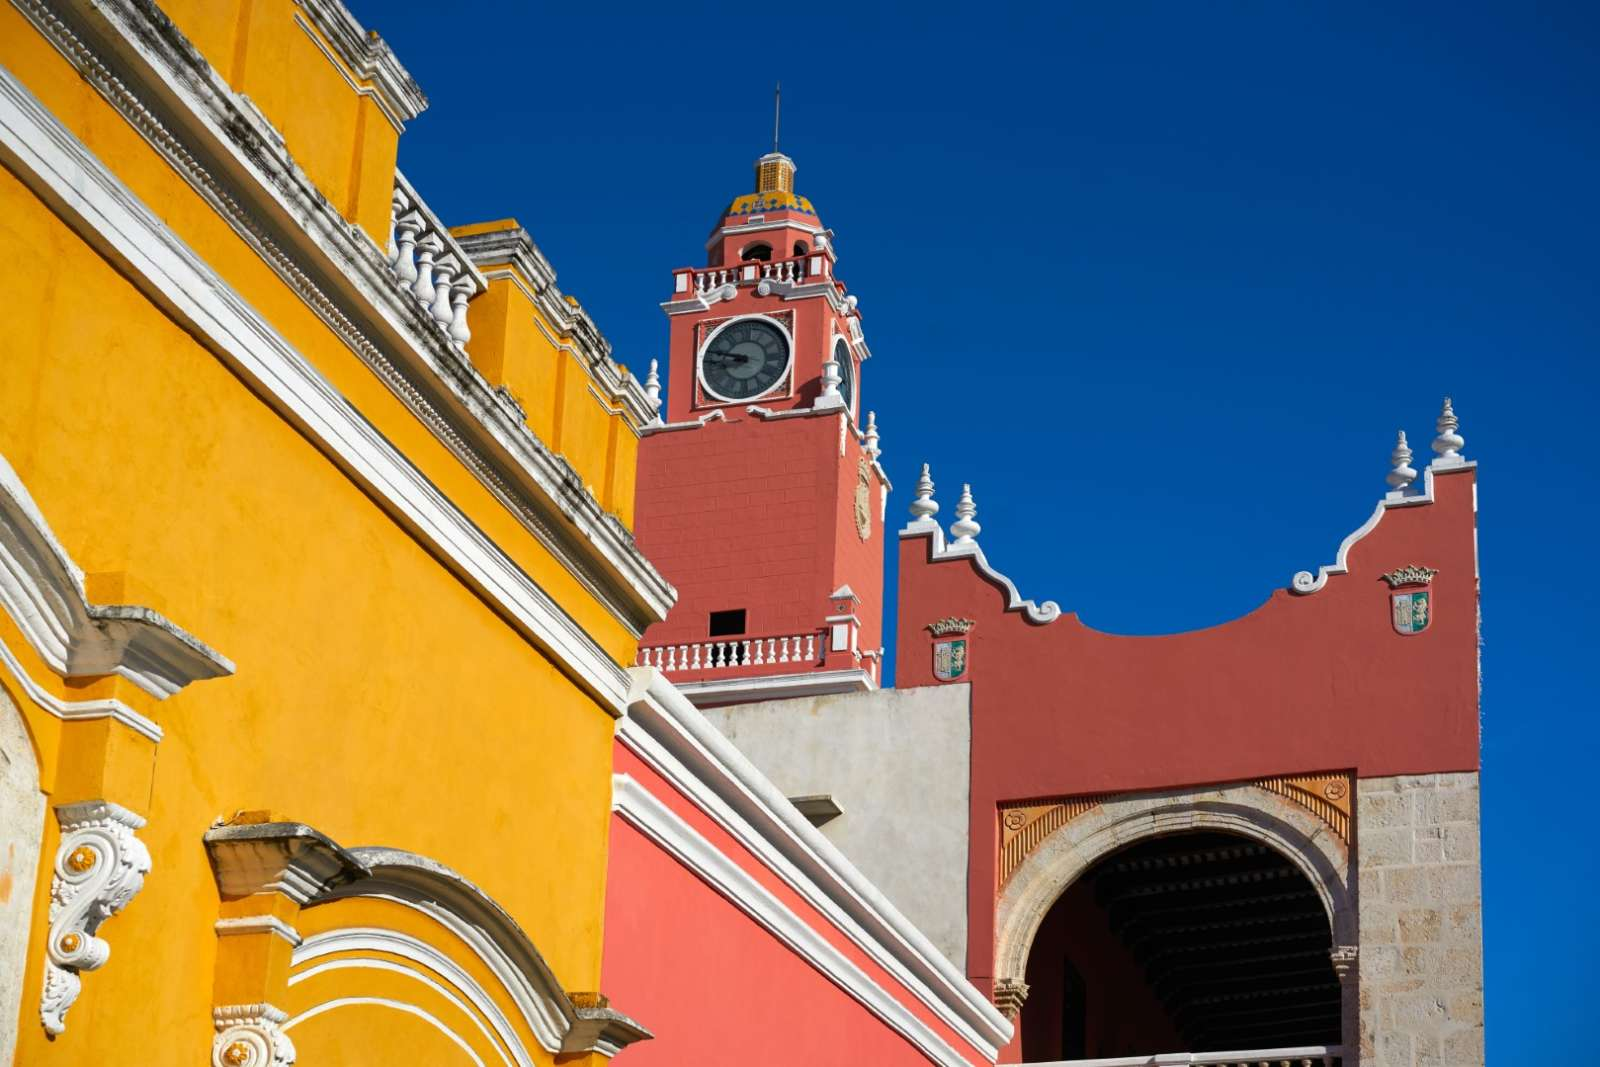 Colourful town hall building in Merida, Yucatan